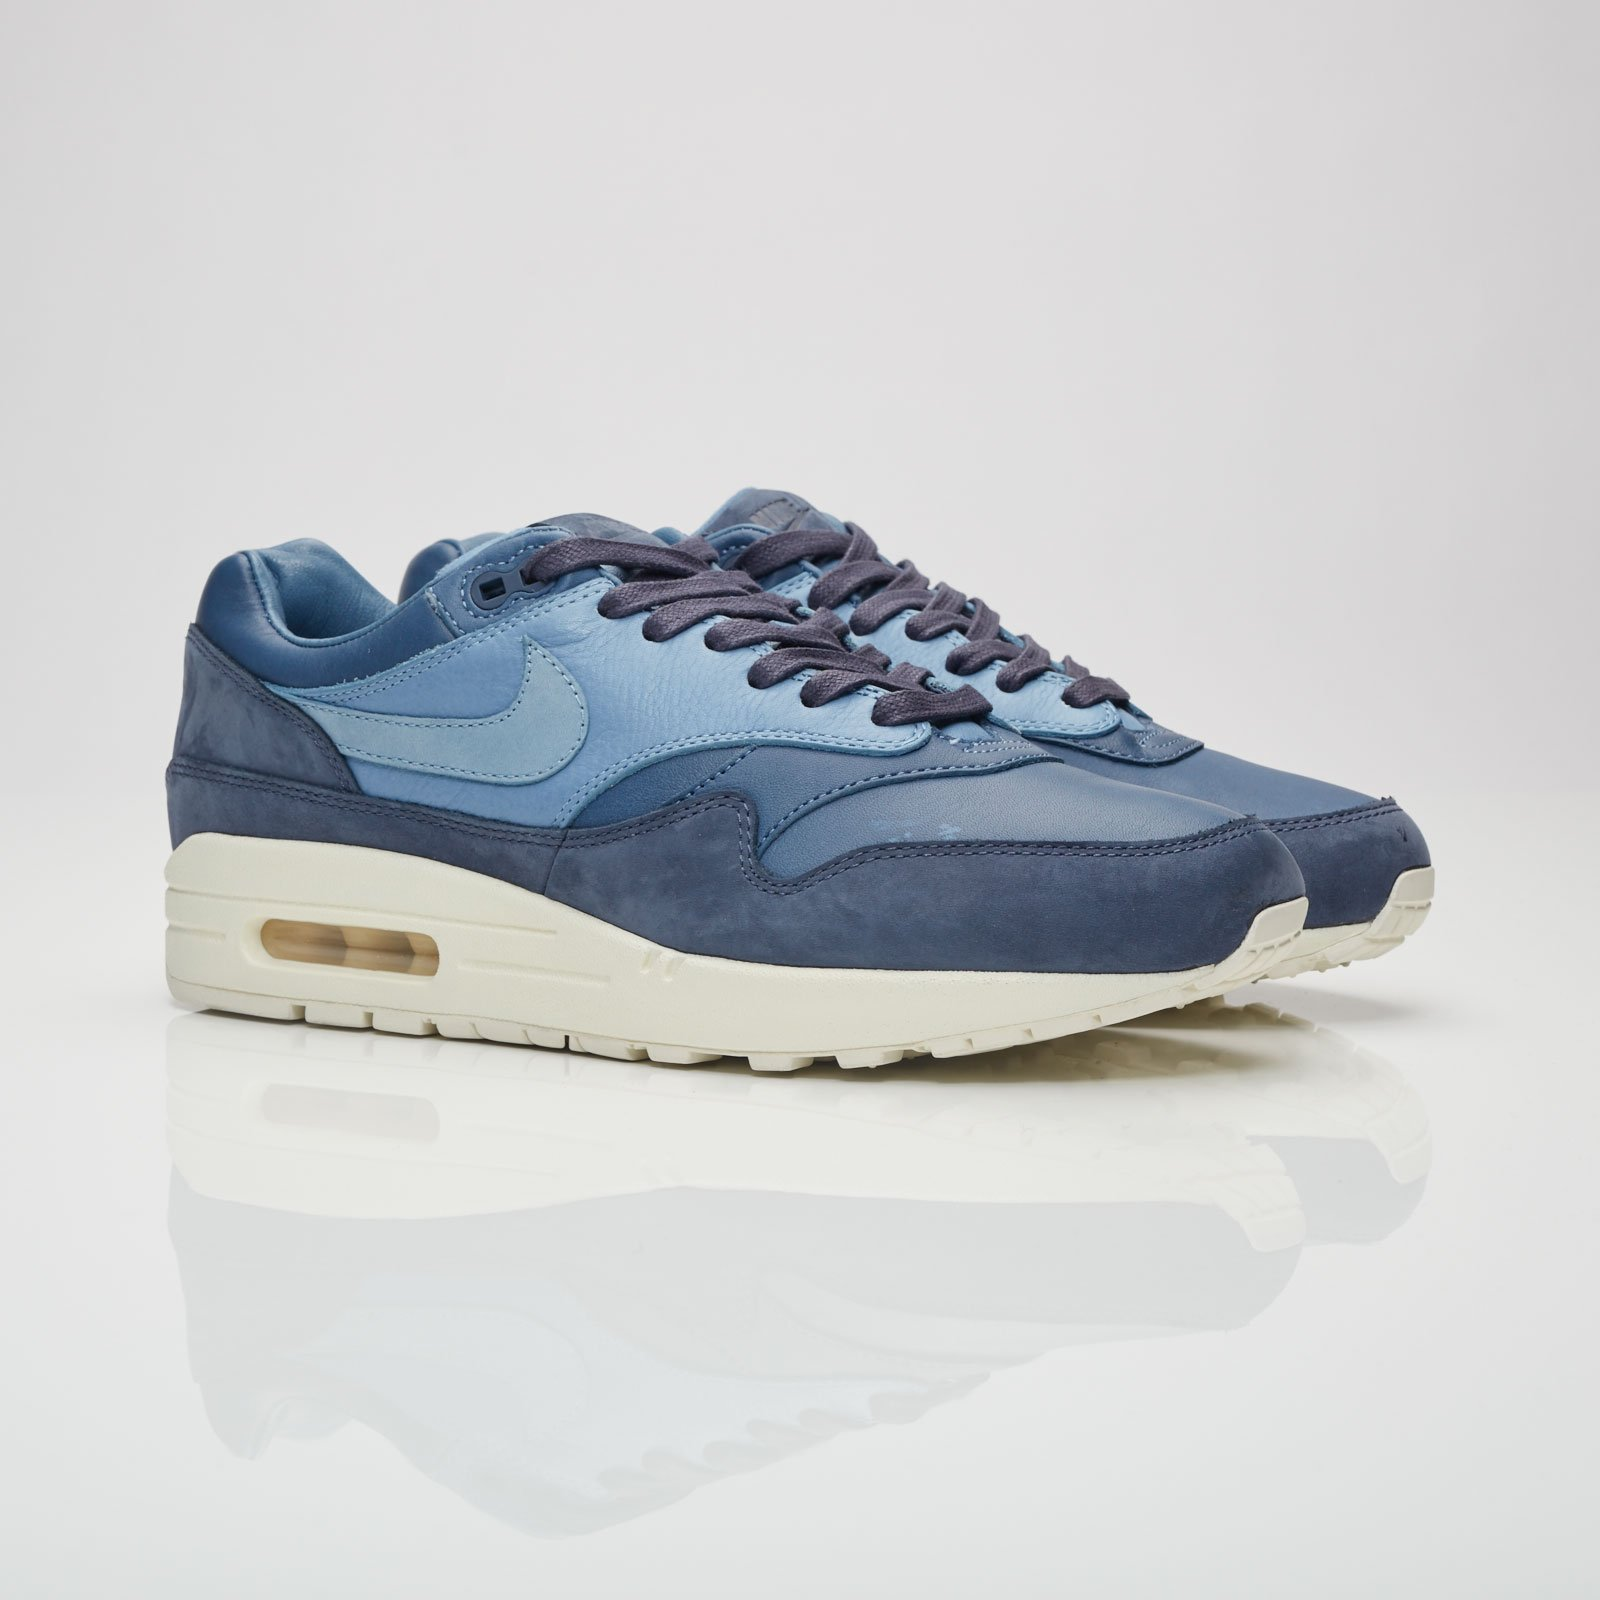 official photos 5c77f 07481 Nike Air Max 1 Pinnacle - 859554-400 - Sneakersnstuff | sneakers ...